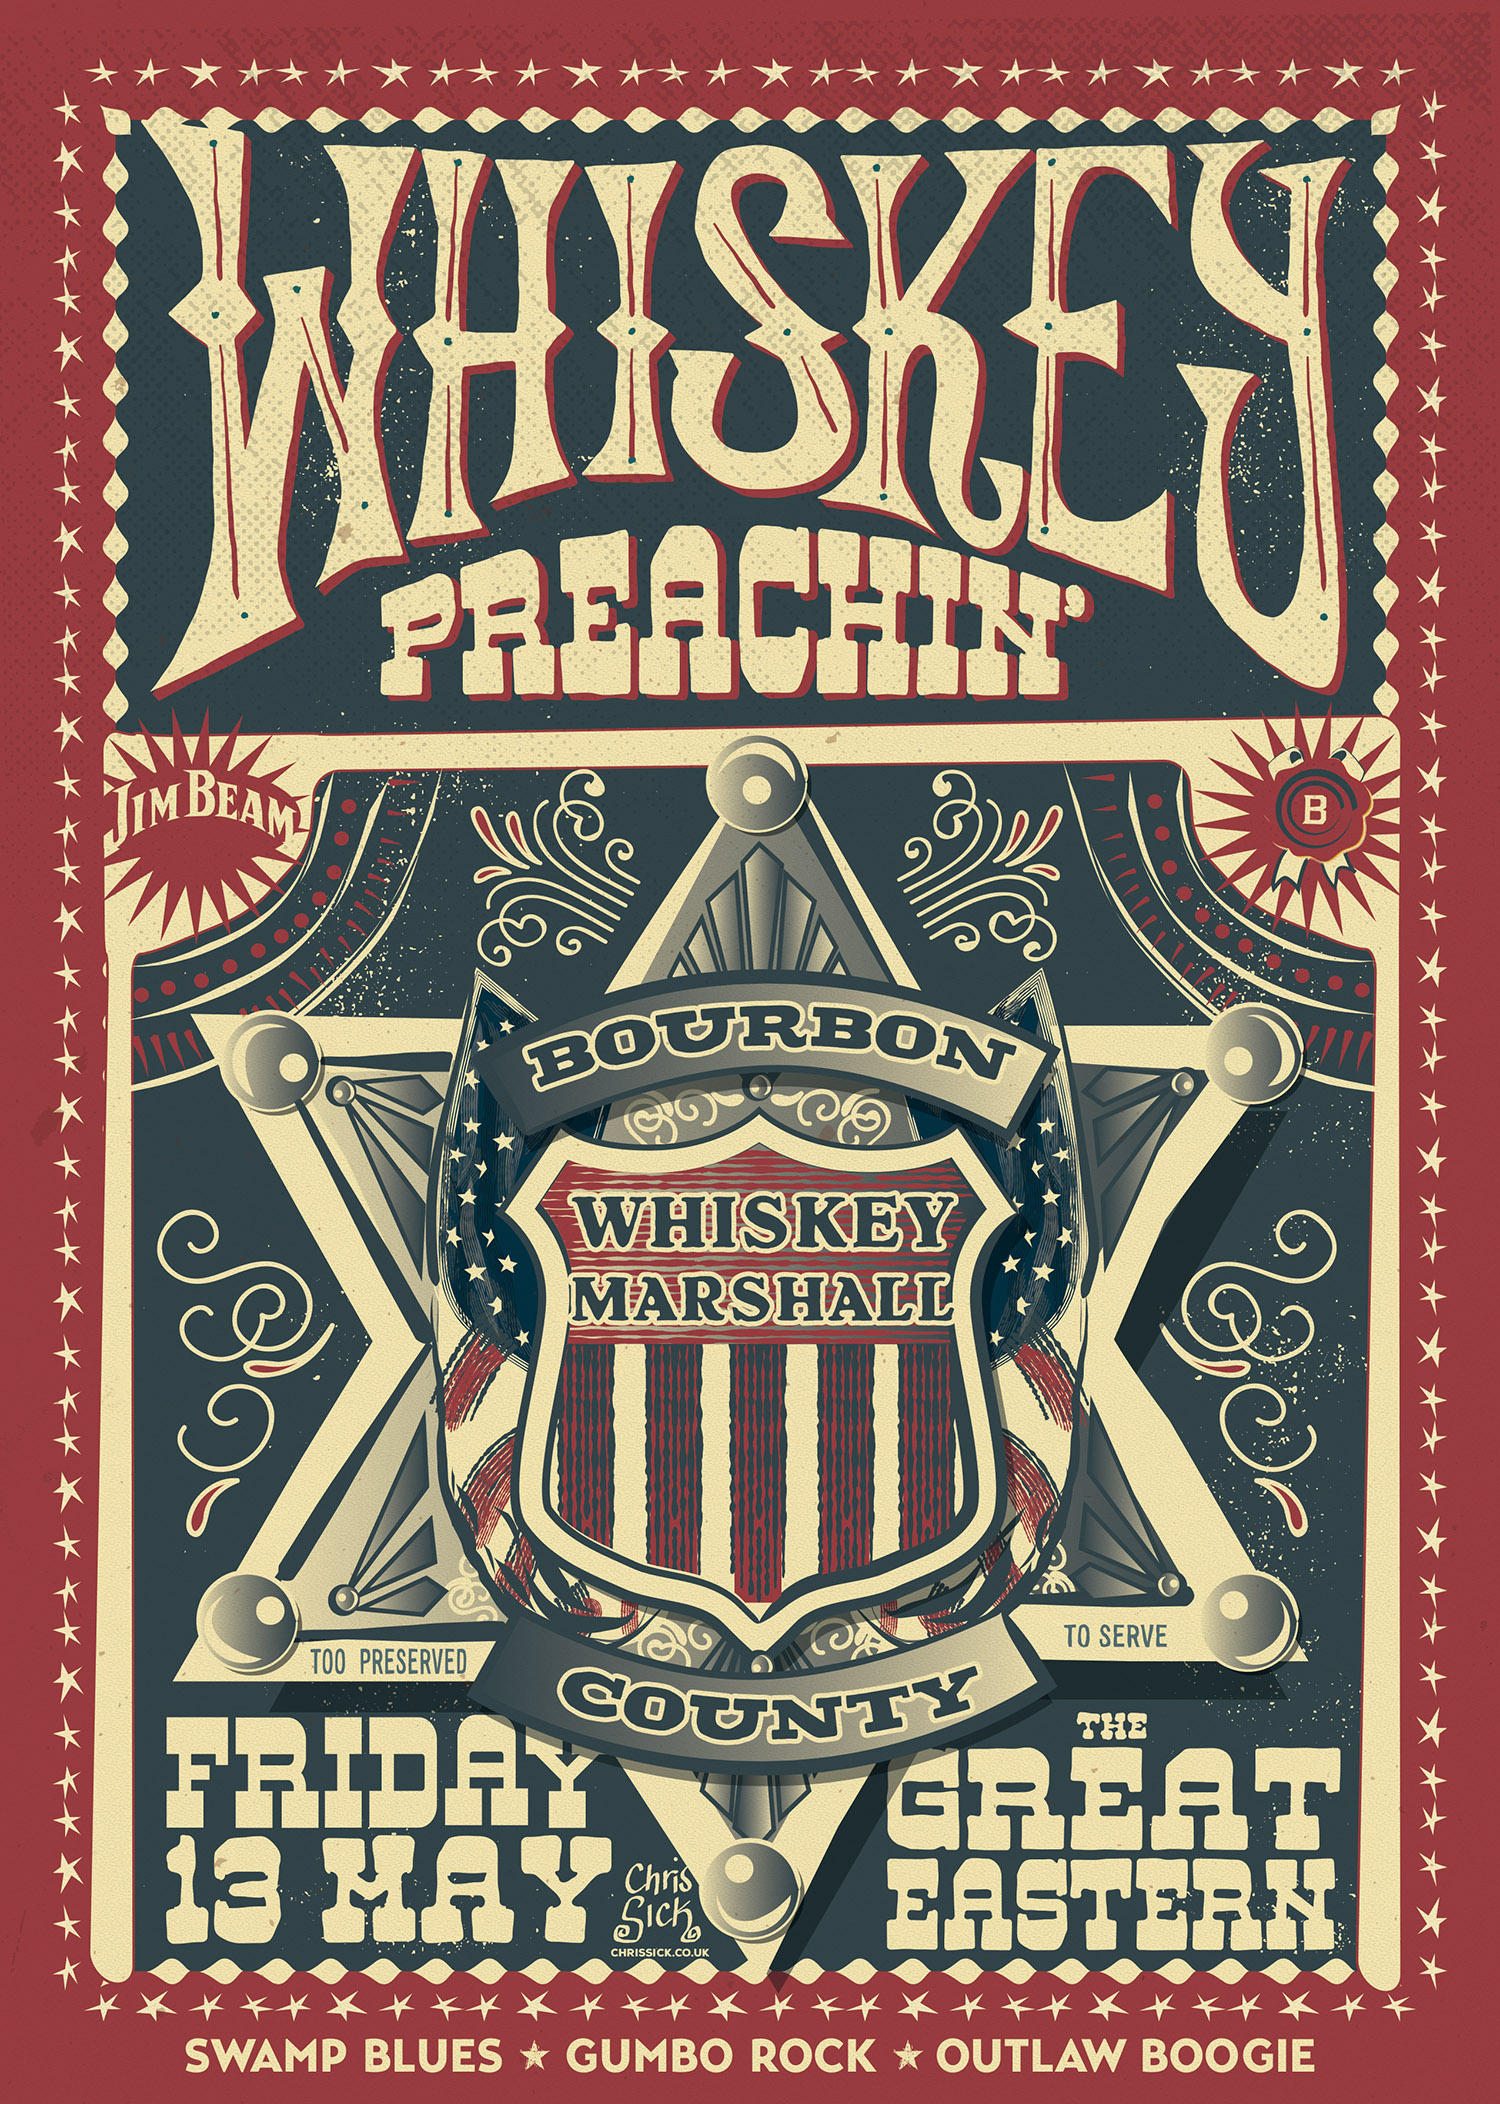 Whiskey+Preachin+Poster+May17.jpg